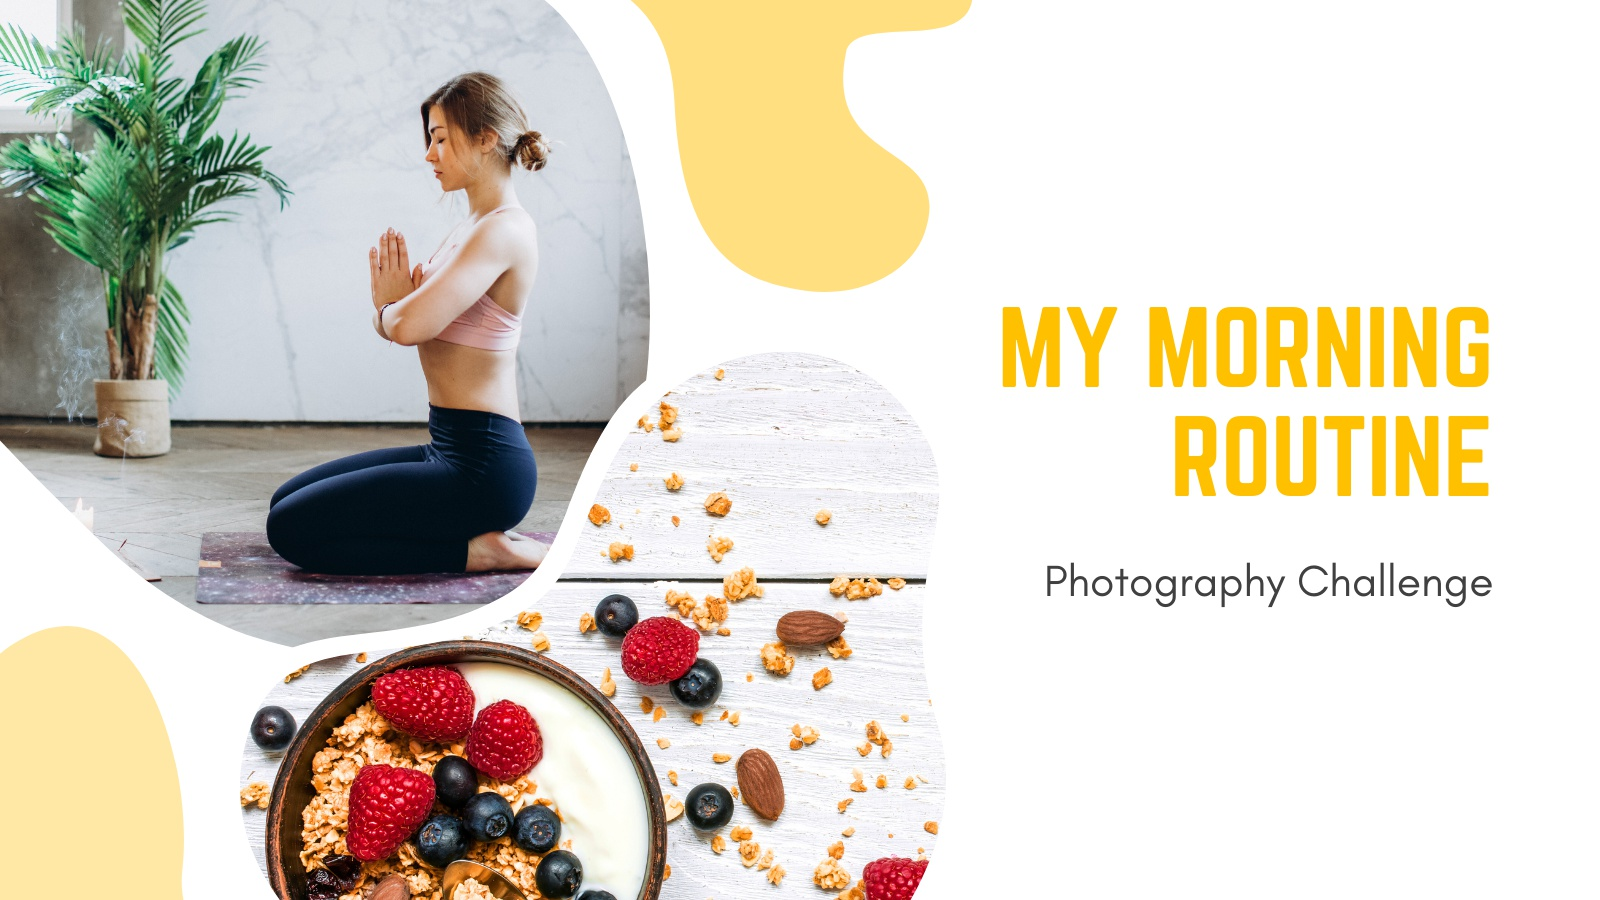 My Morning Routine - Photography Challenge